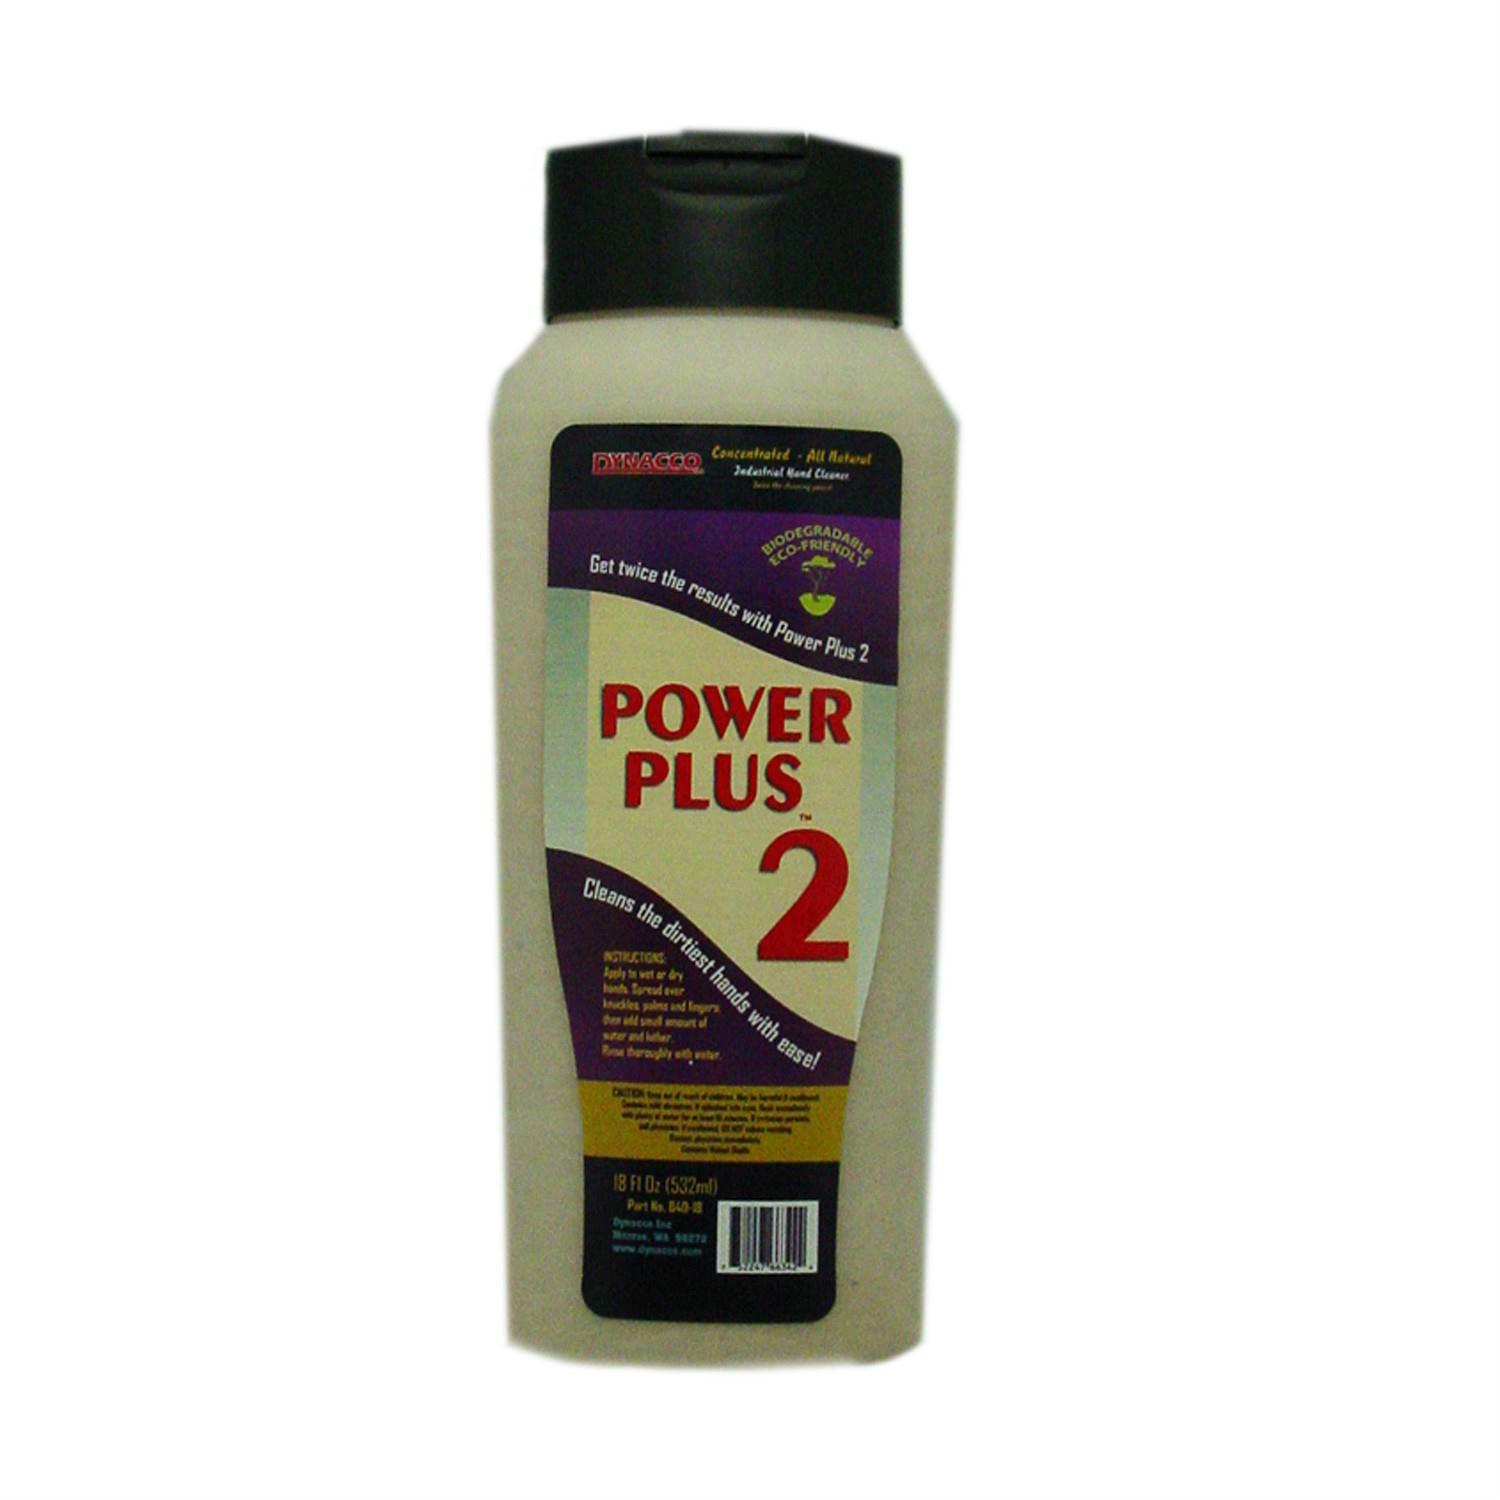 Power Plus 2 Hand Cleaner